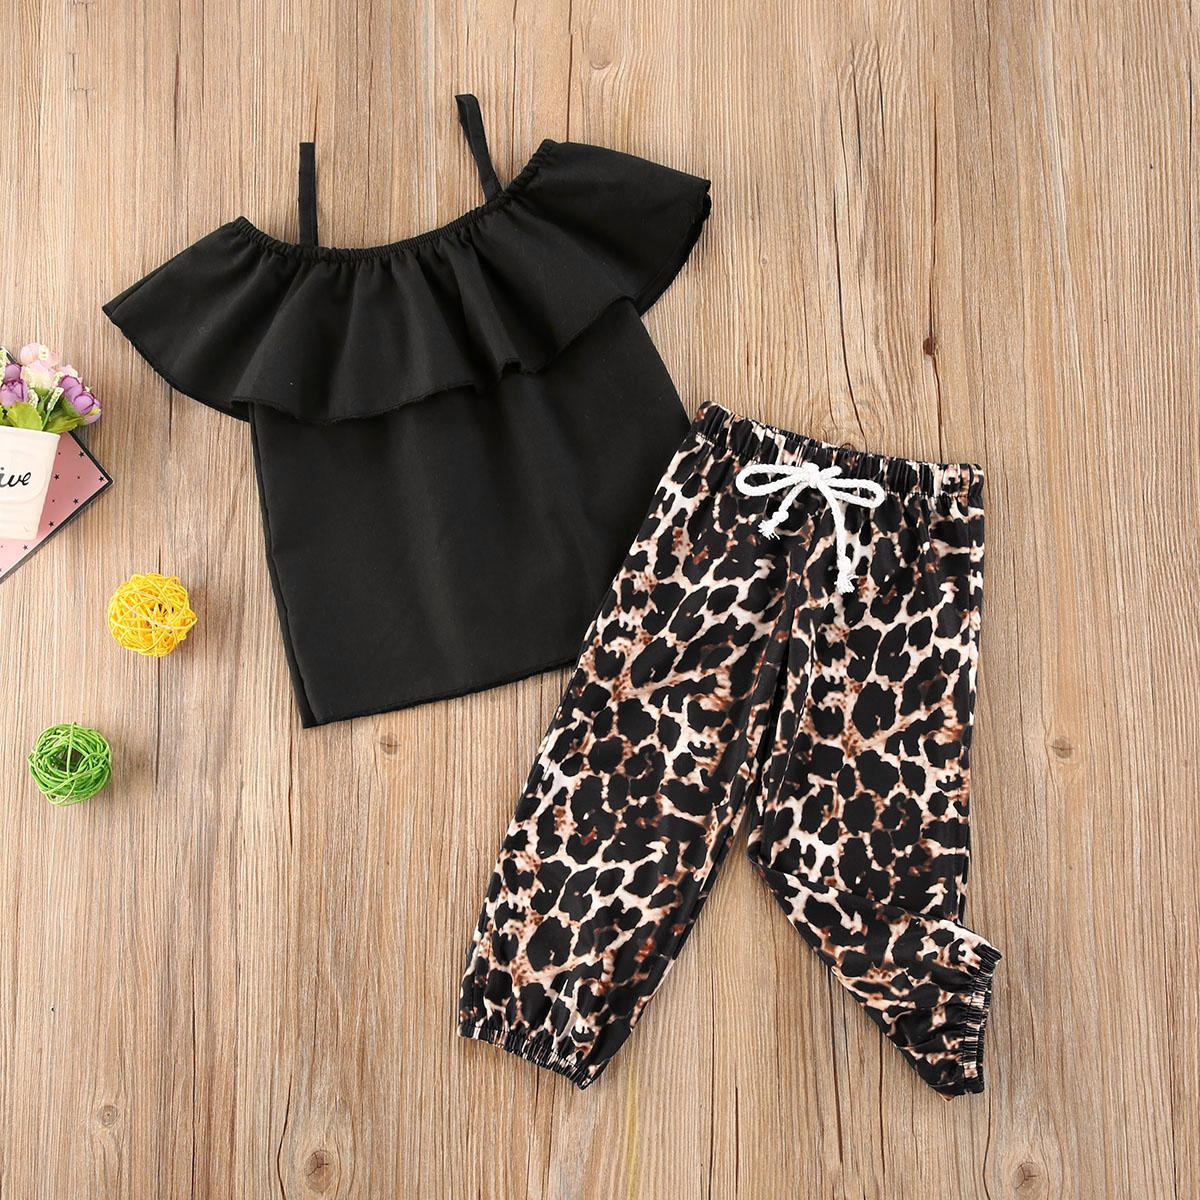 1-5Y Fashion Toddler Kids Baby Girl Clothes Sets Off Shoulder T-shirt Tops+Ruffles Skirt Outfit Clothes